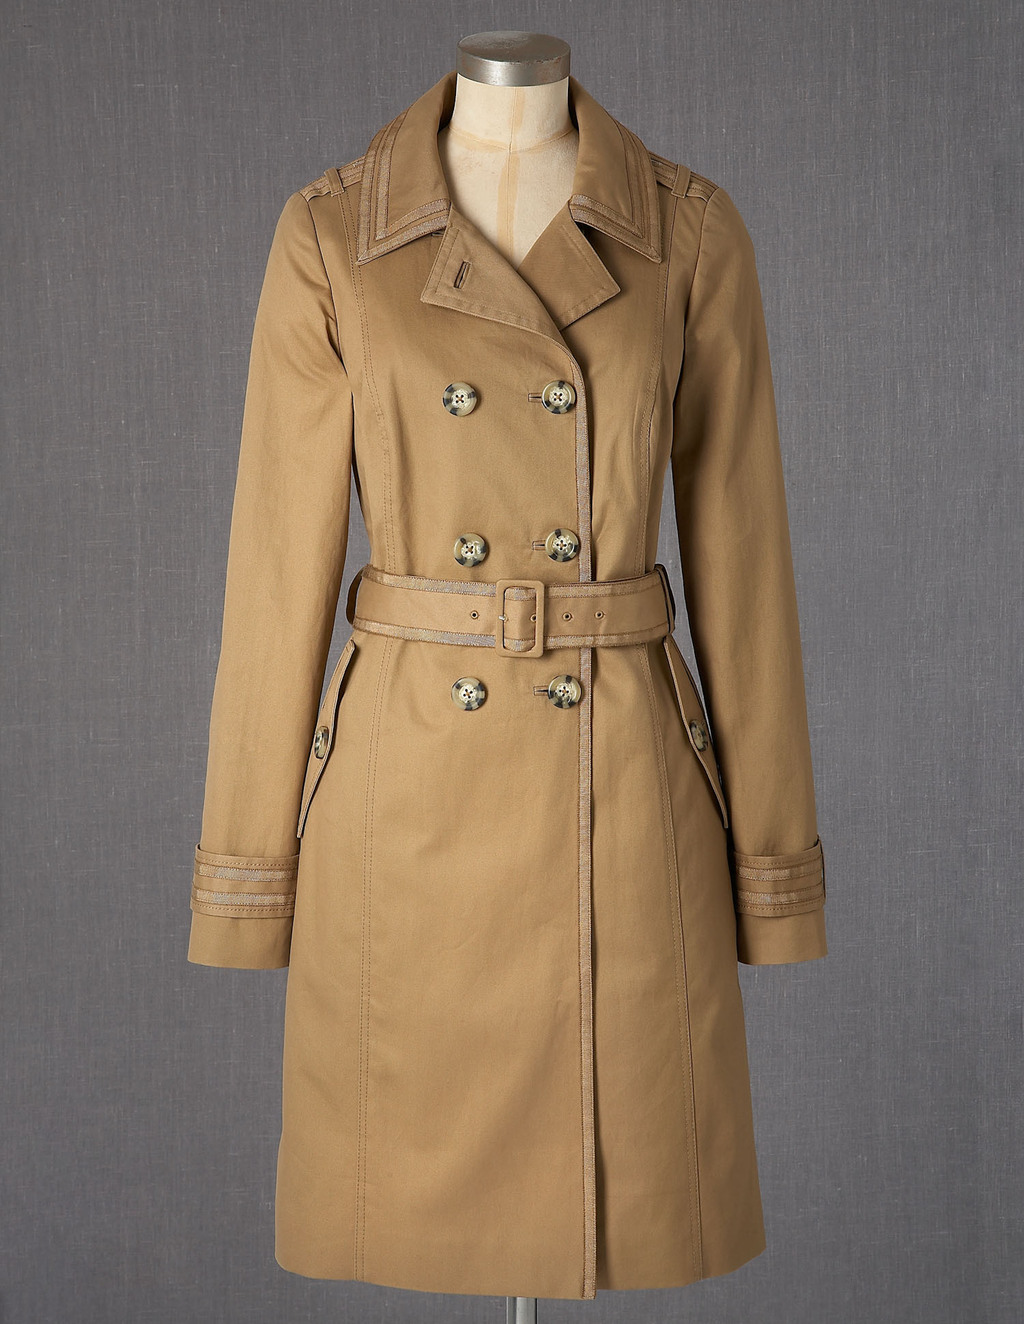 Autumn Trench - pattern: plain; style: trench coat; length: mid thigh; predominant colour: camel; fit: tailored/fitted; fibres: cotton - 100%; collar: shirt collar/peter pan/zip with opening; waist detail: belted waist/tie at waist/drawstring; shoulder detail: discreet epaulette; sleeve length: long sleeve; sleeve style: standard; texture group: cotton feel fabrics; pattern type: fabric; season: a/w 2013